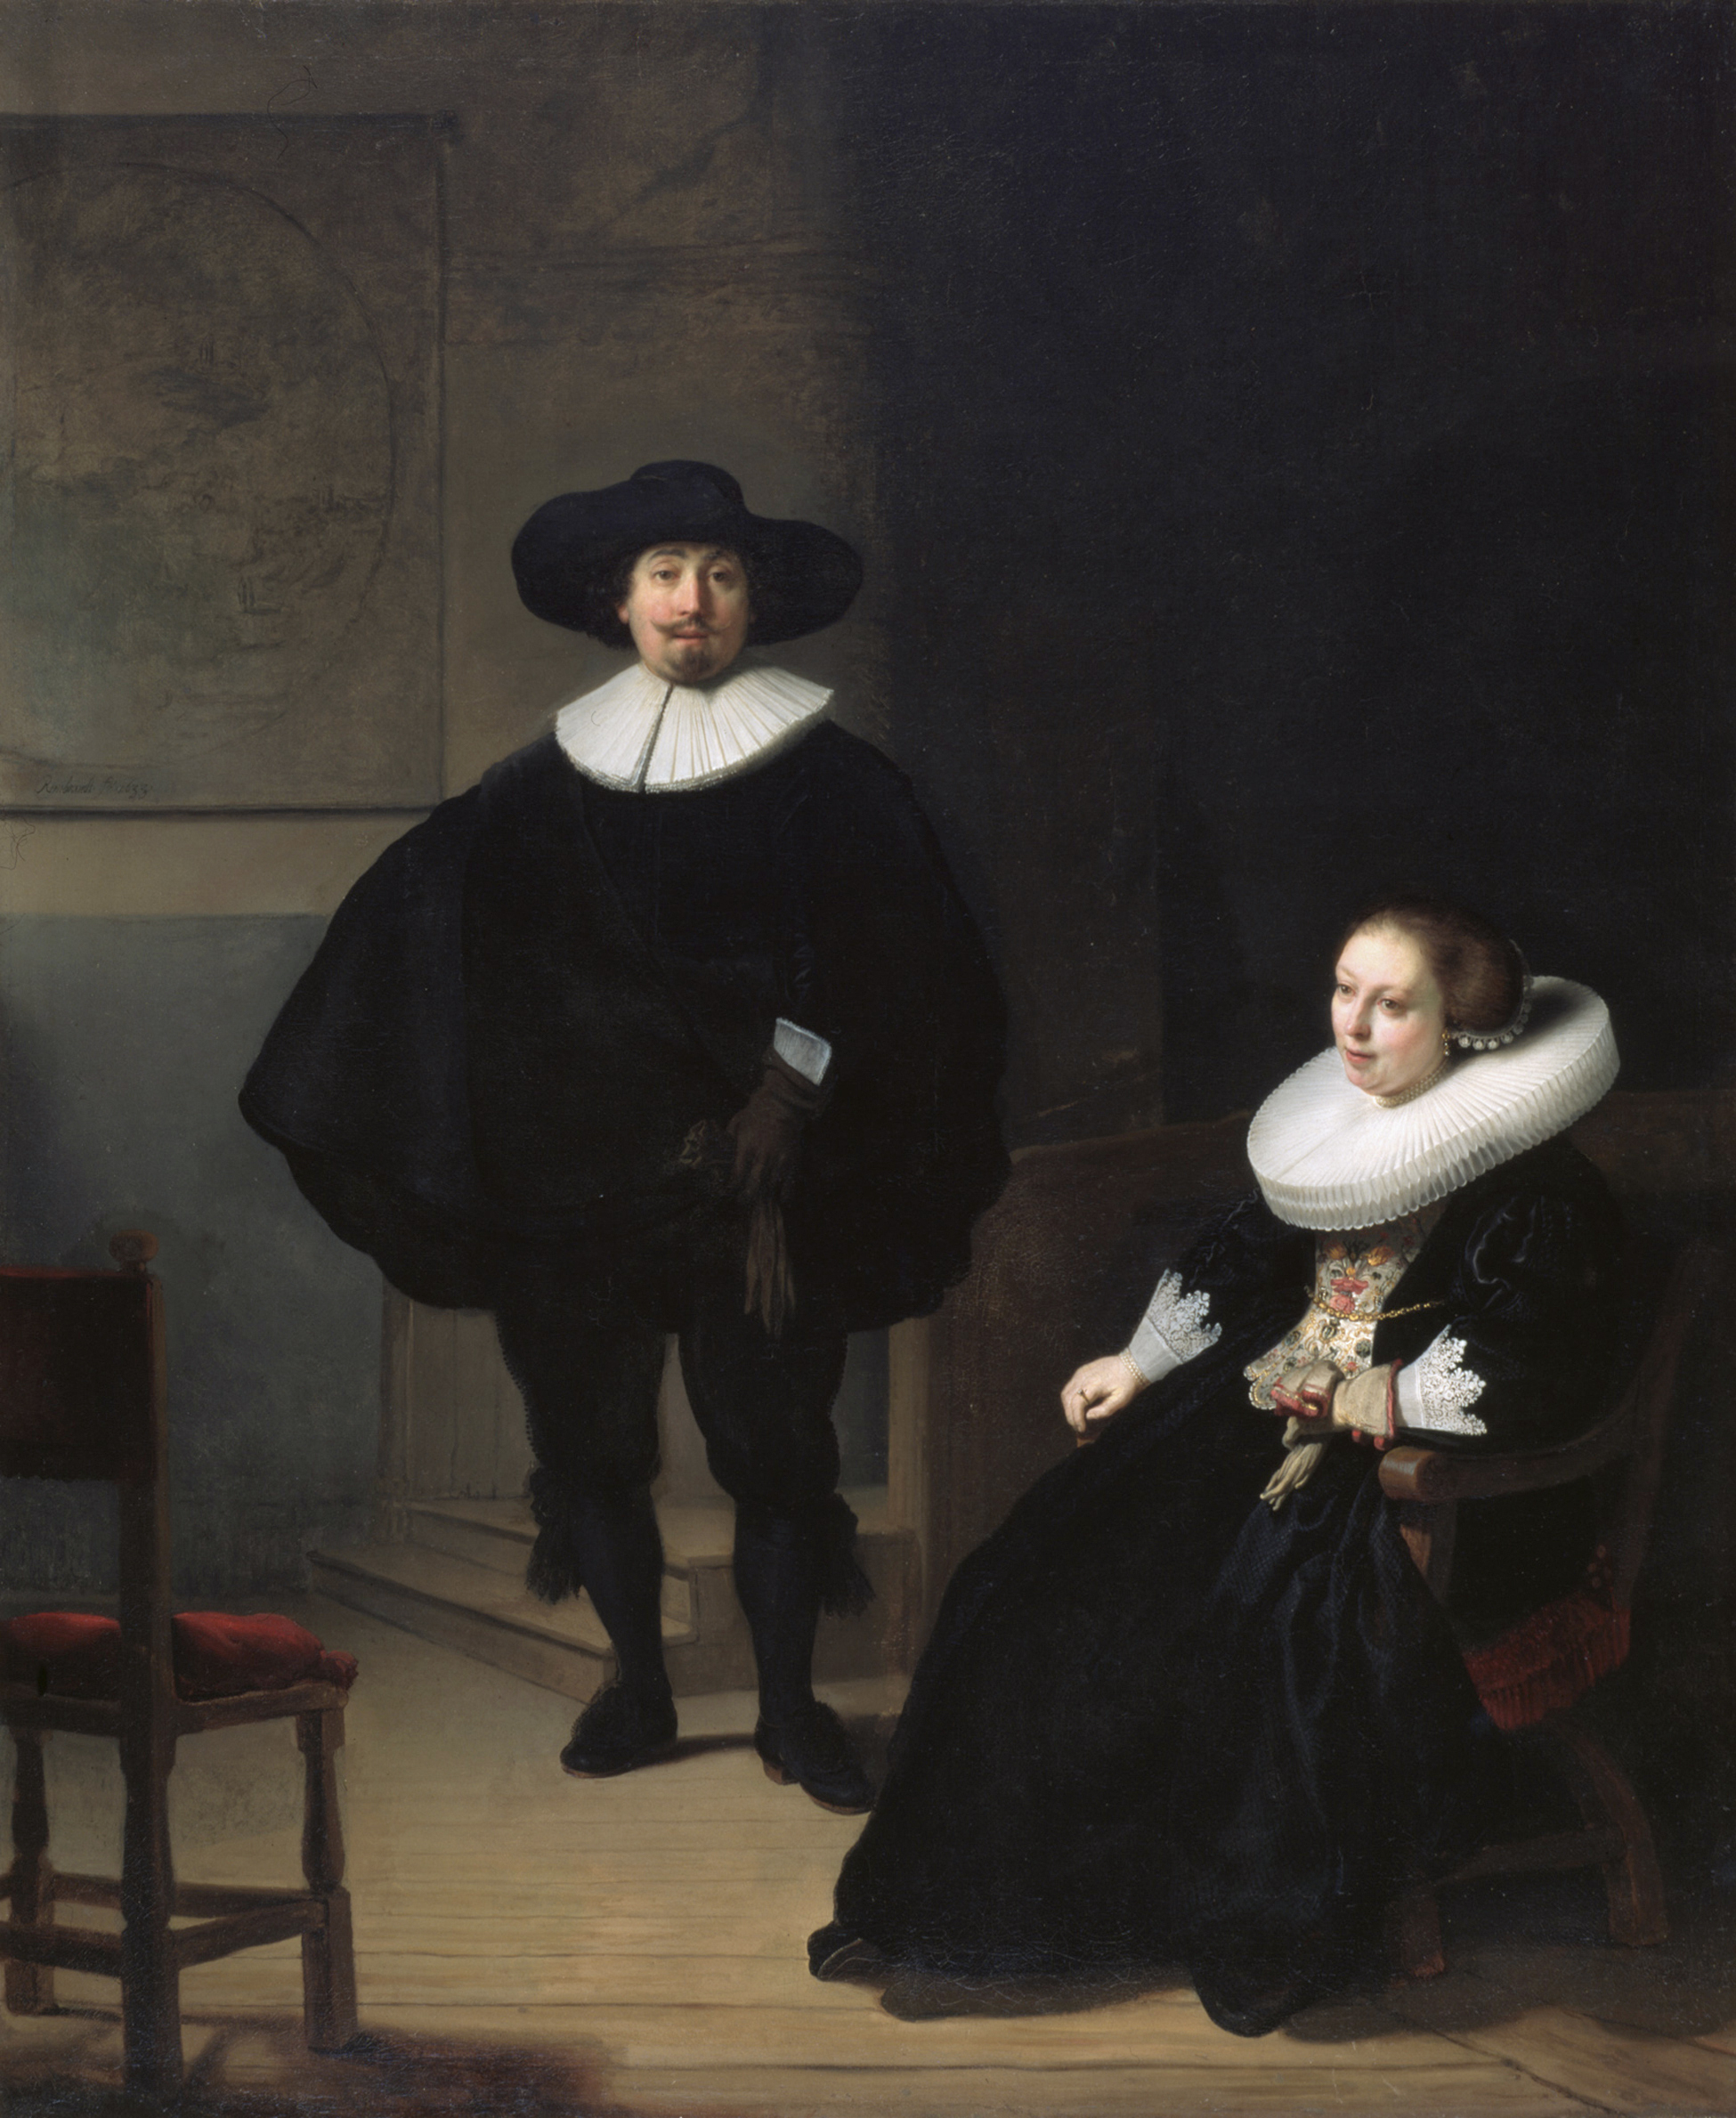 Resultado de imagen para the lady and gentleman rembrandt